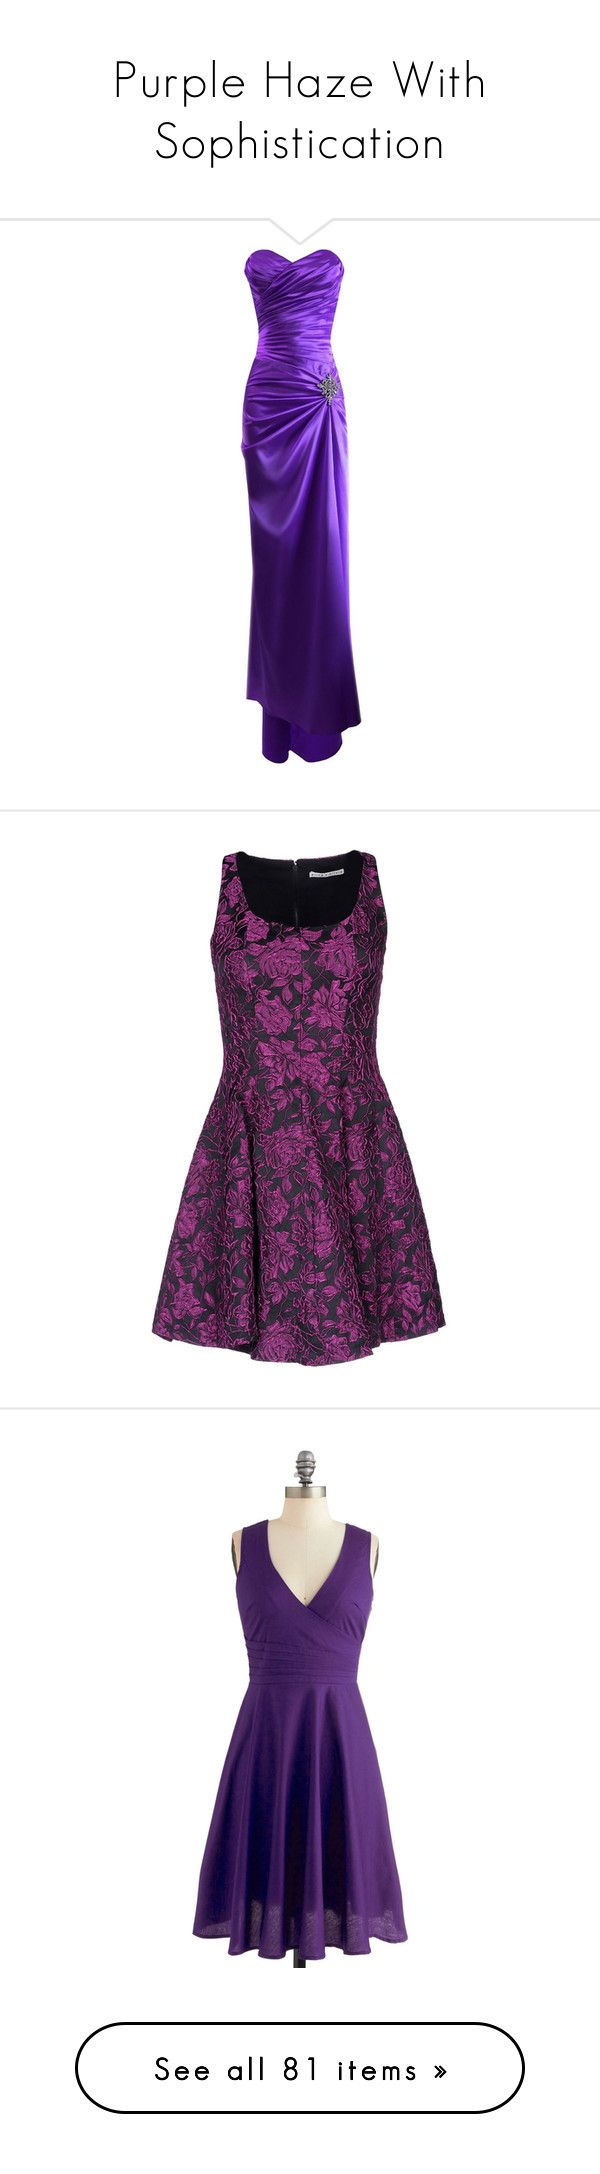 """""""Purple Haze With Sophistication"""" by english-thea ❤ liked on Polyvore featuring dresses, gowns, long dresses, 13. dresses., purple, petite formal dresses, long bridesmaid dresses, long formal dresses, long formal gowns and long gowns"""